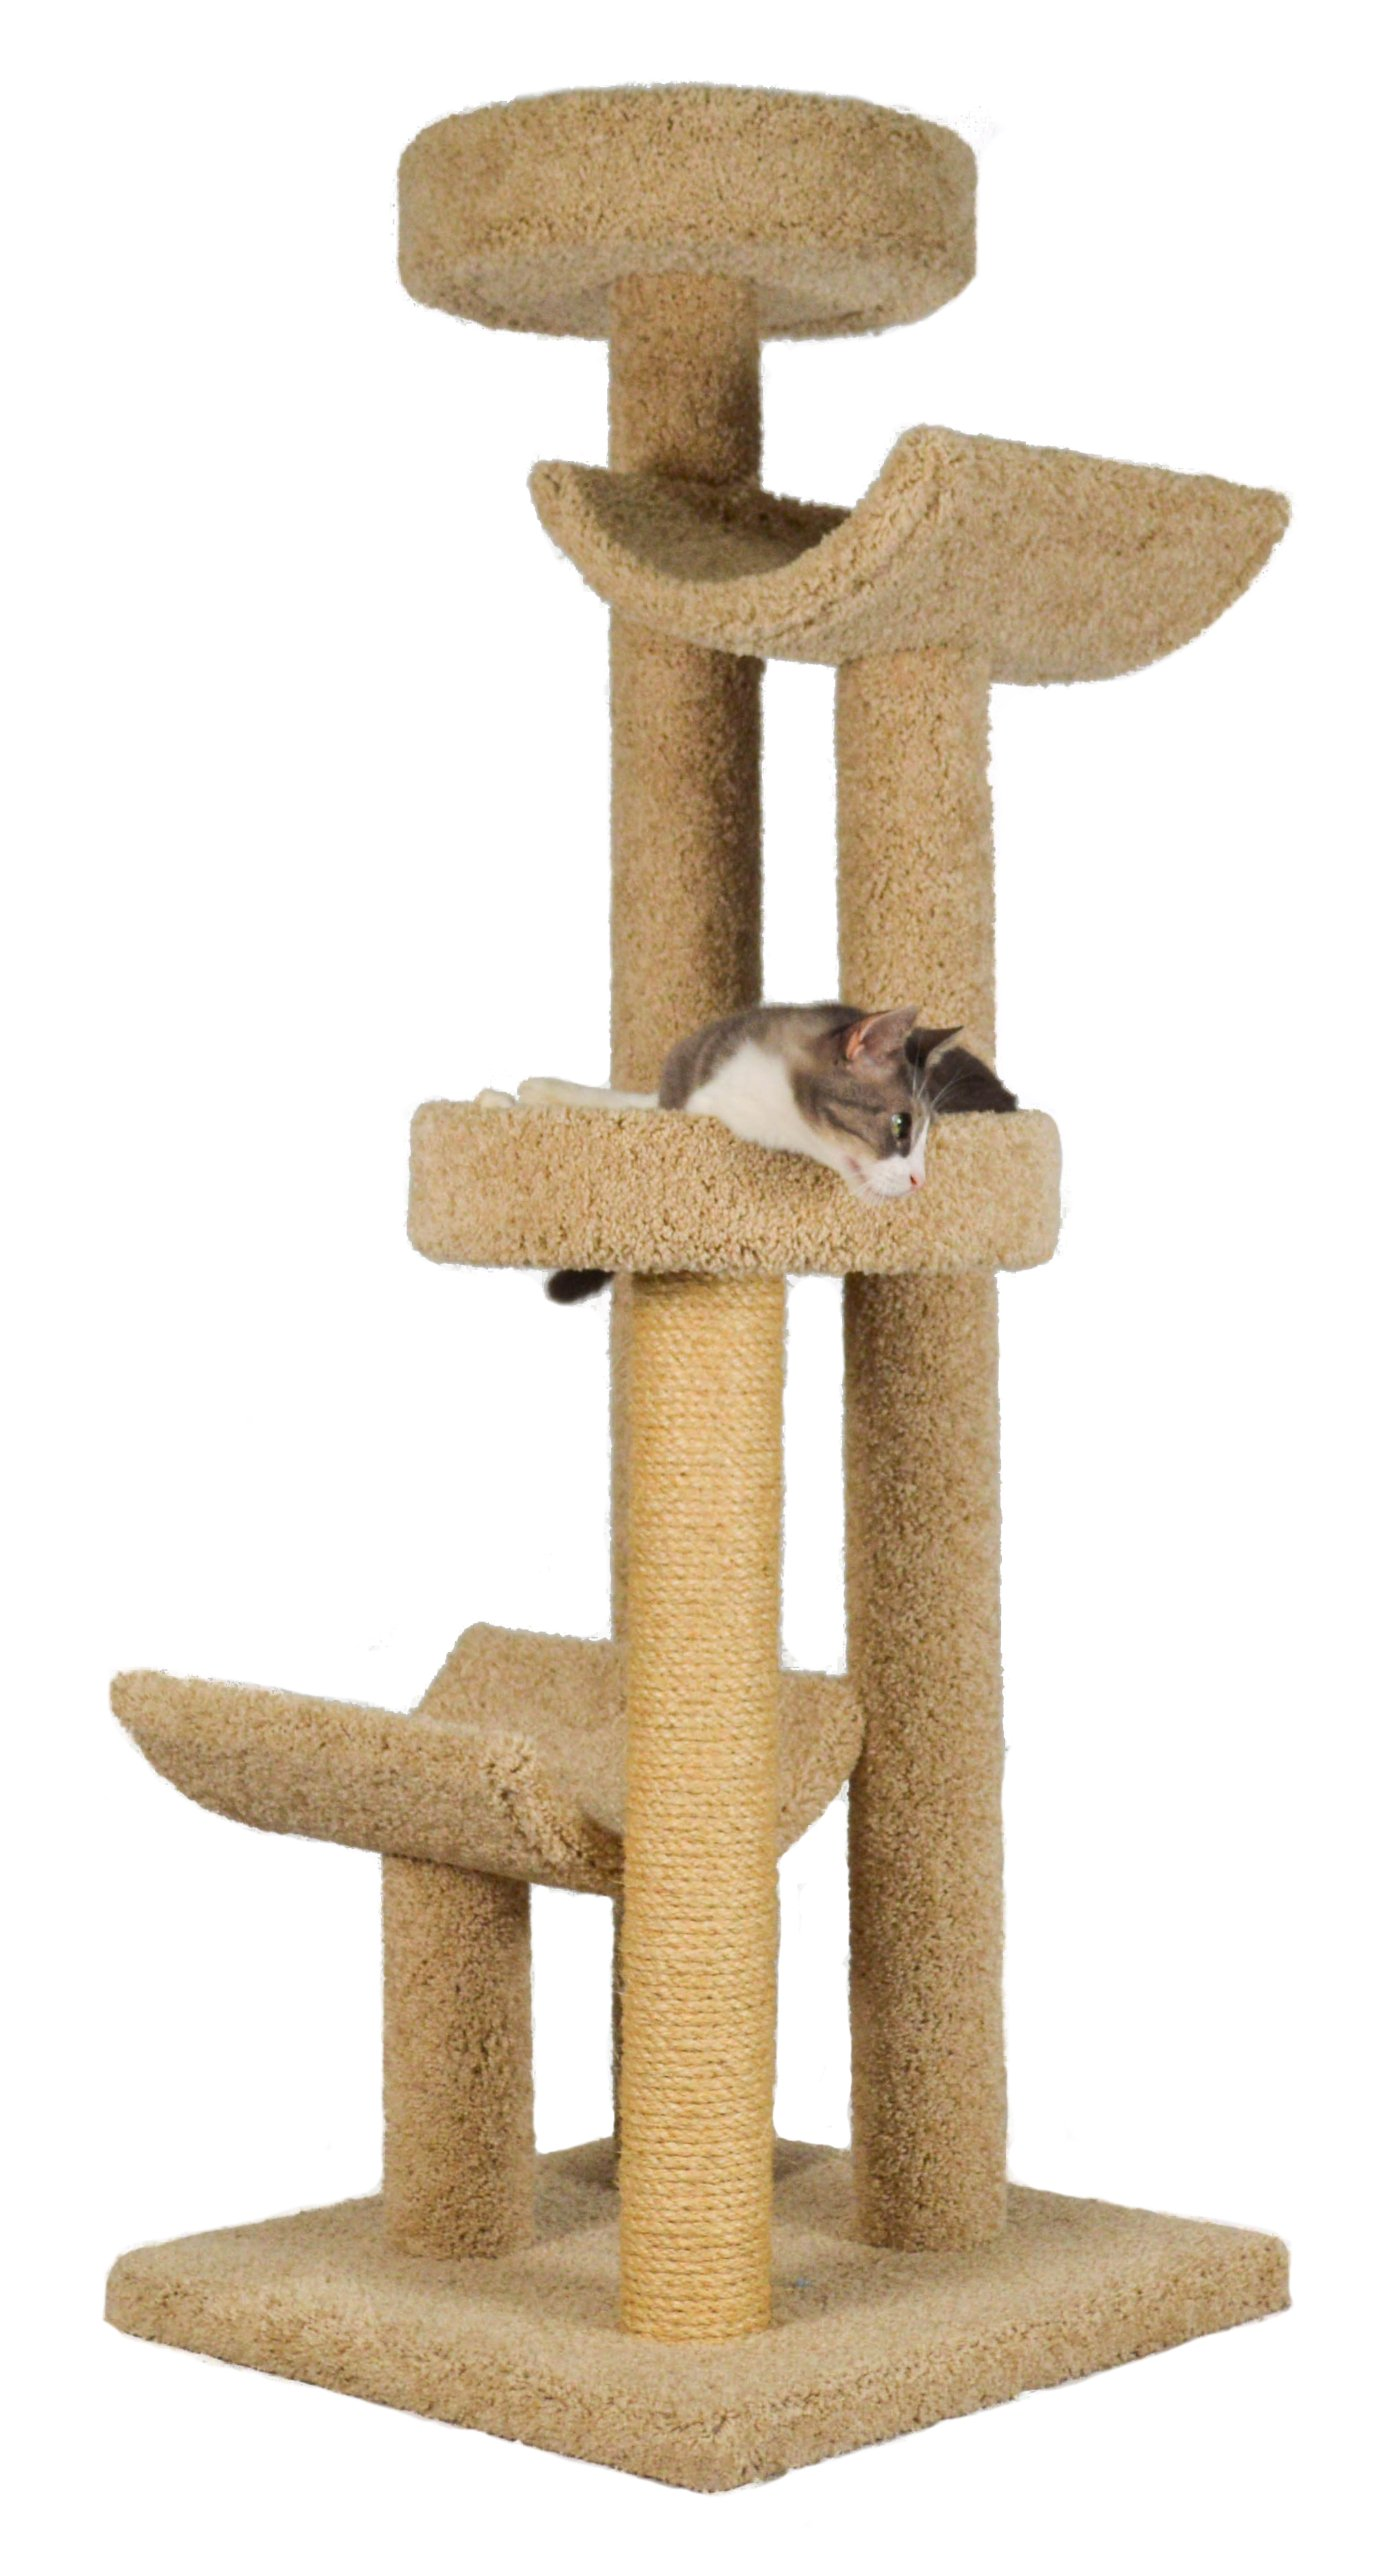 handmade cat tree product details 7205